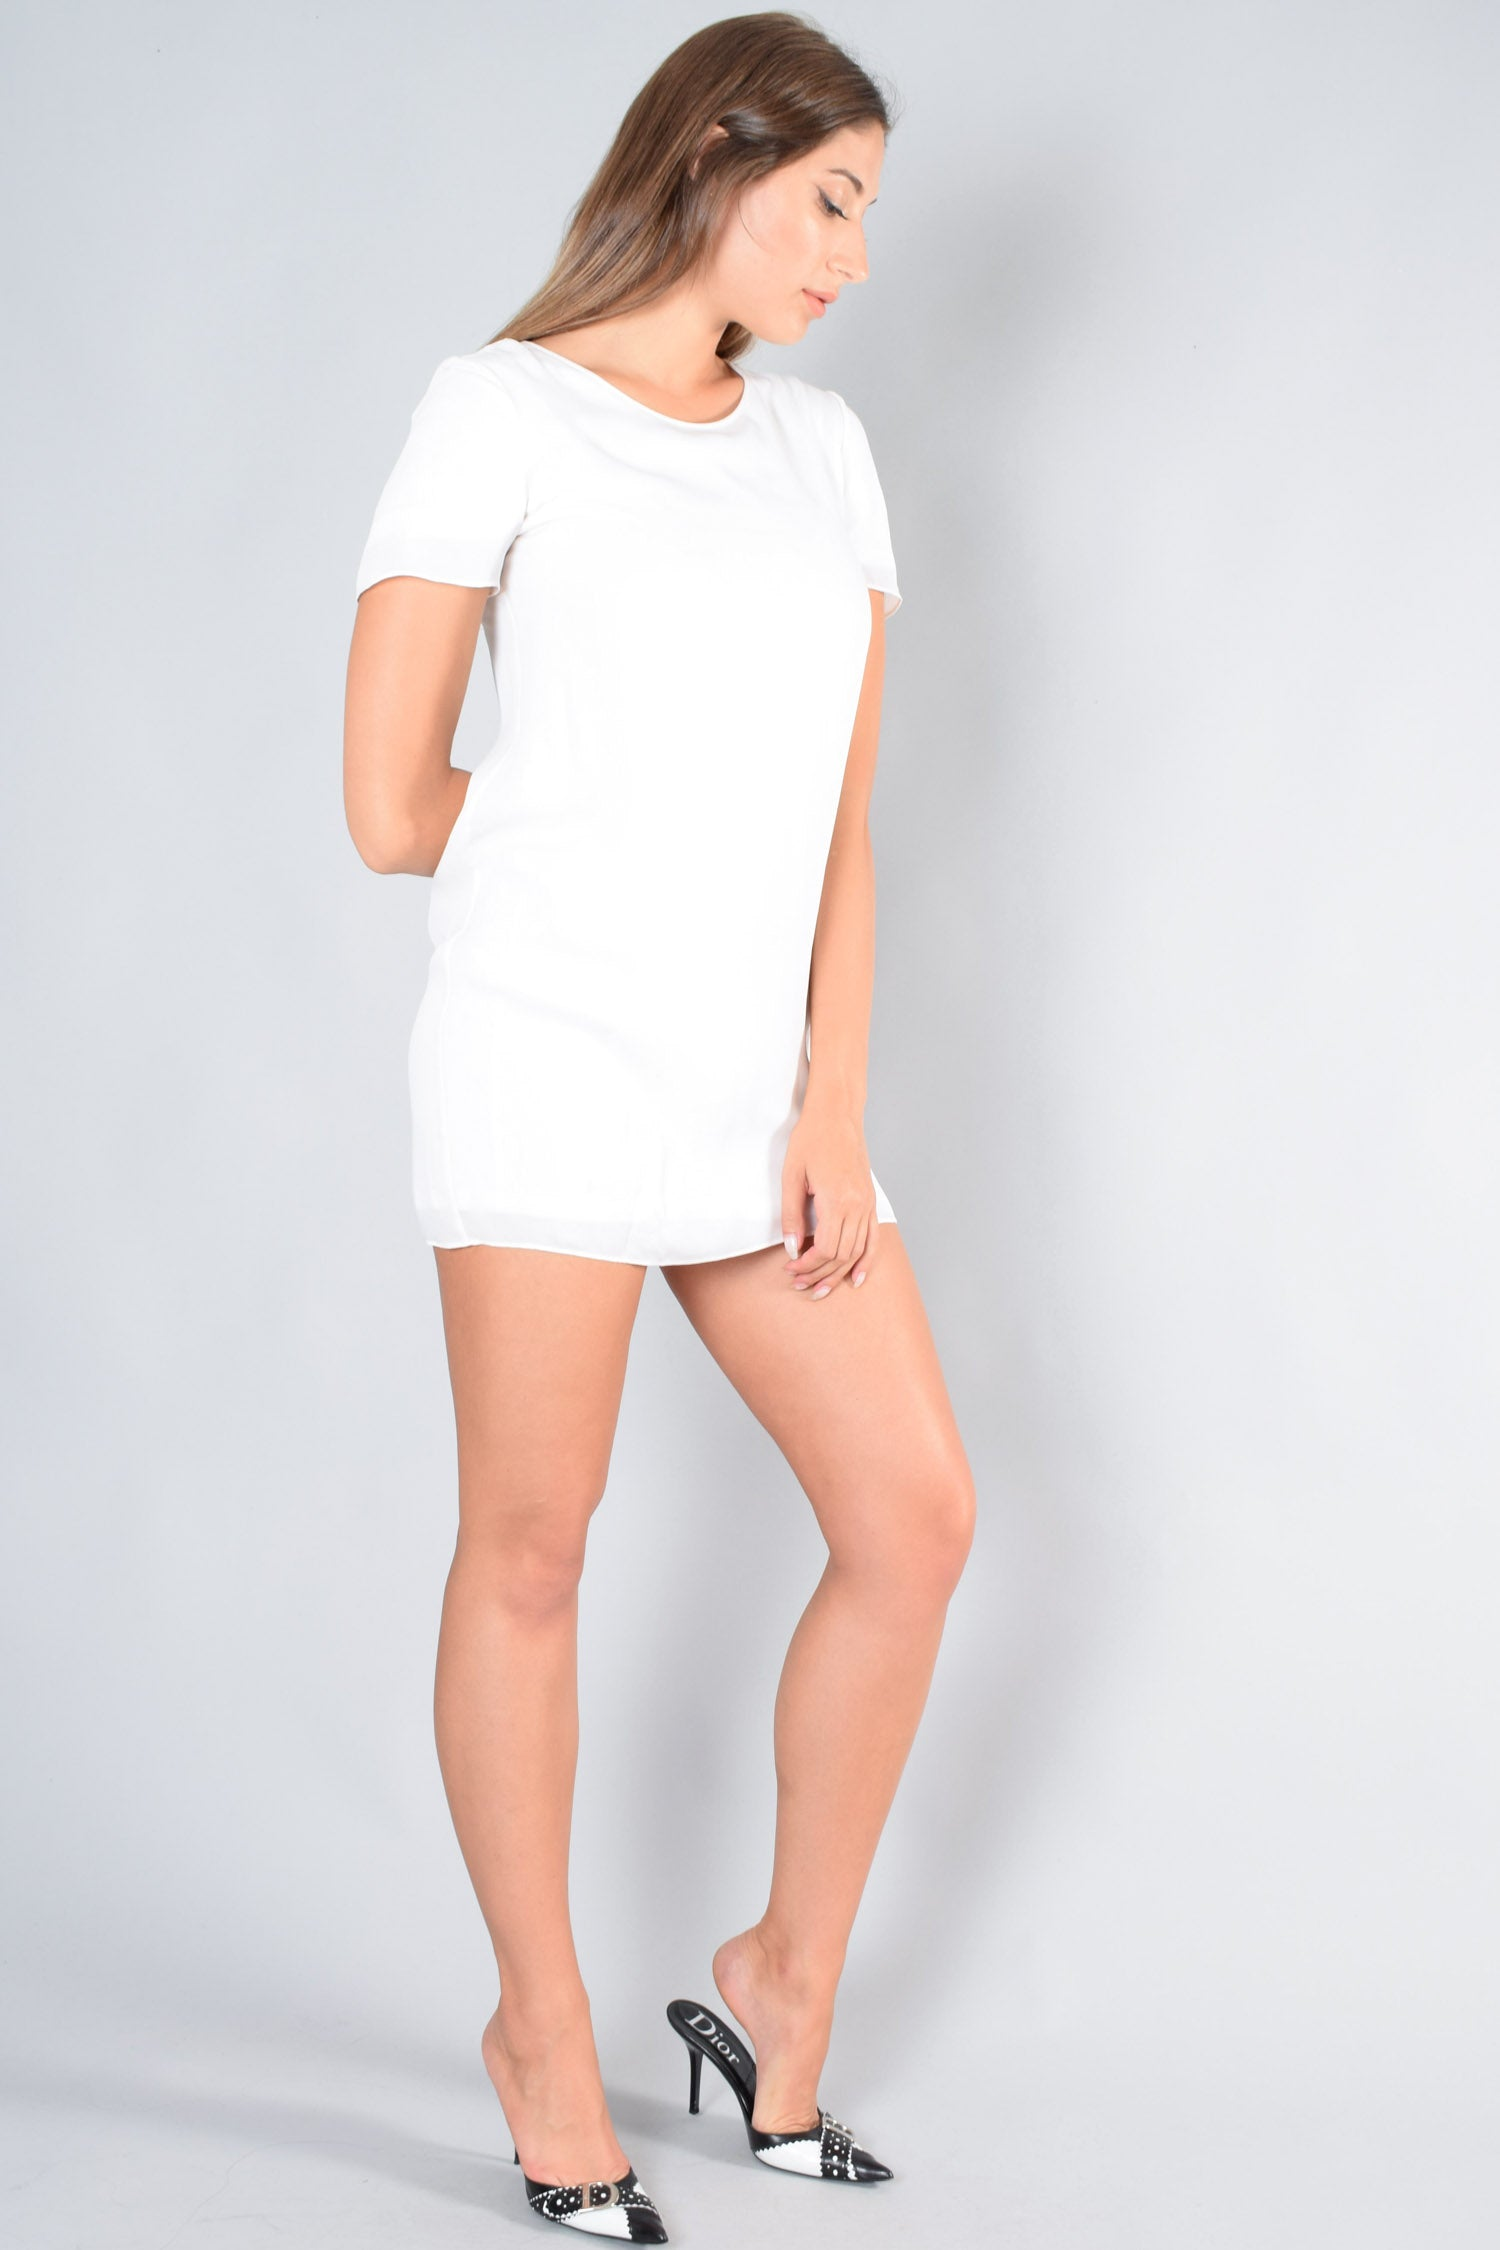 T by Alexander Wang White S/S Dress Size XS